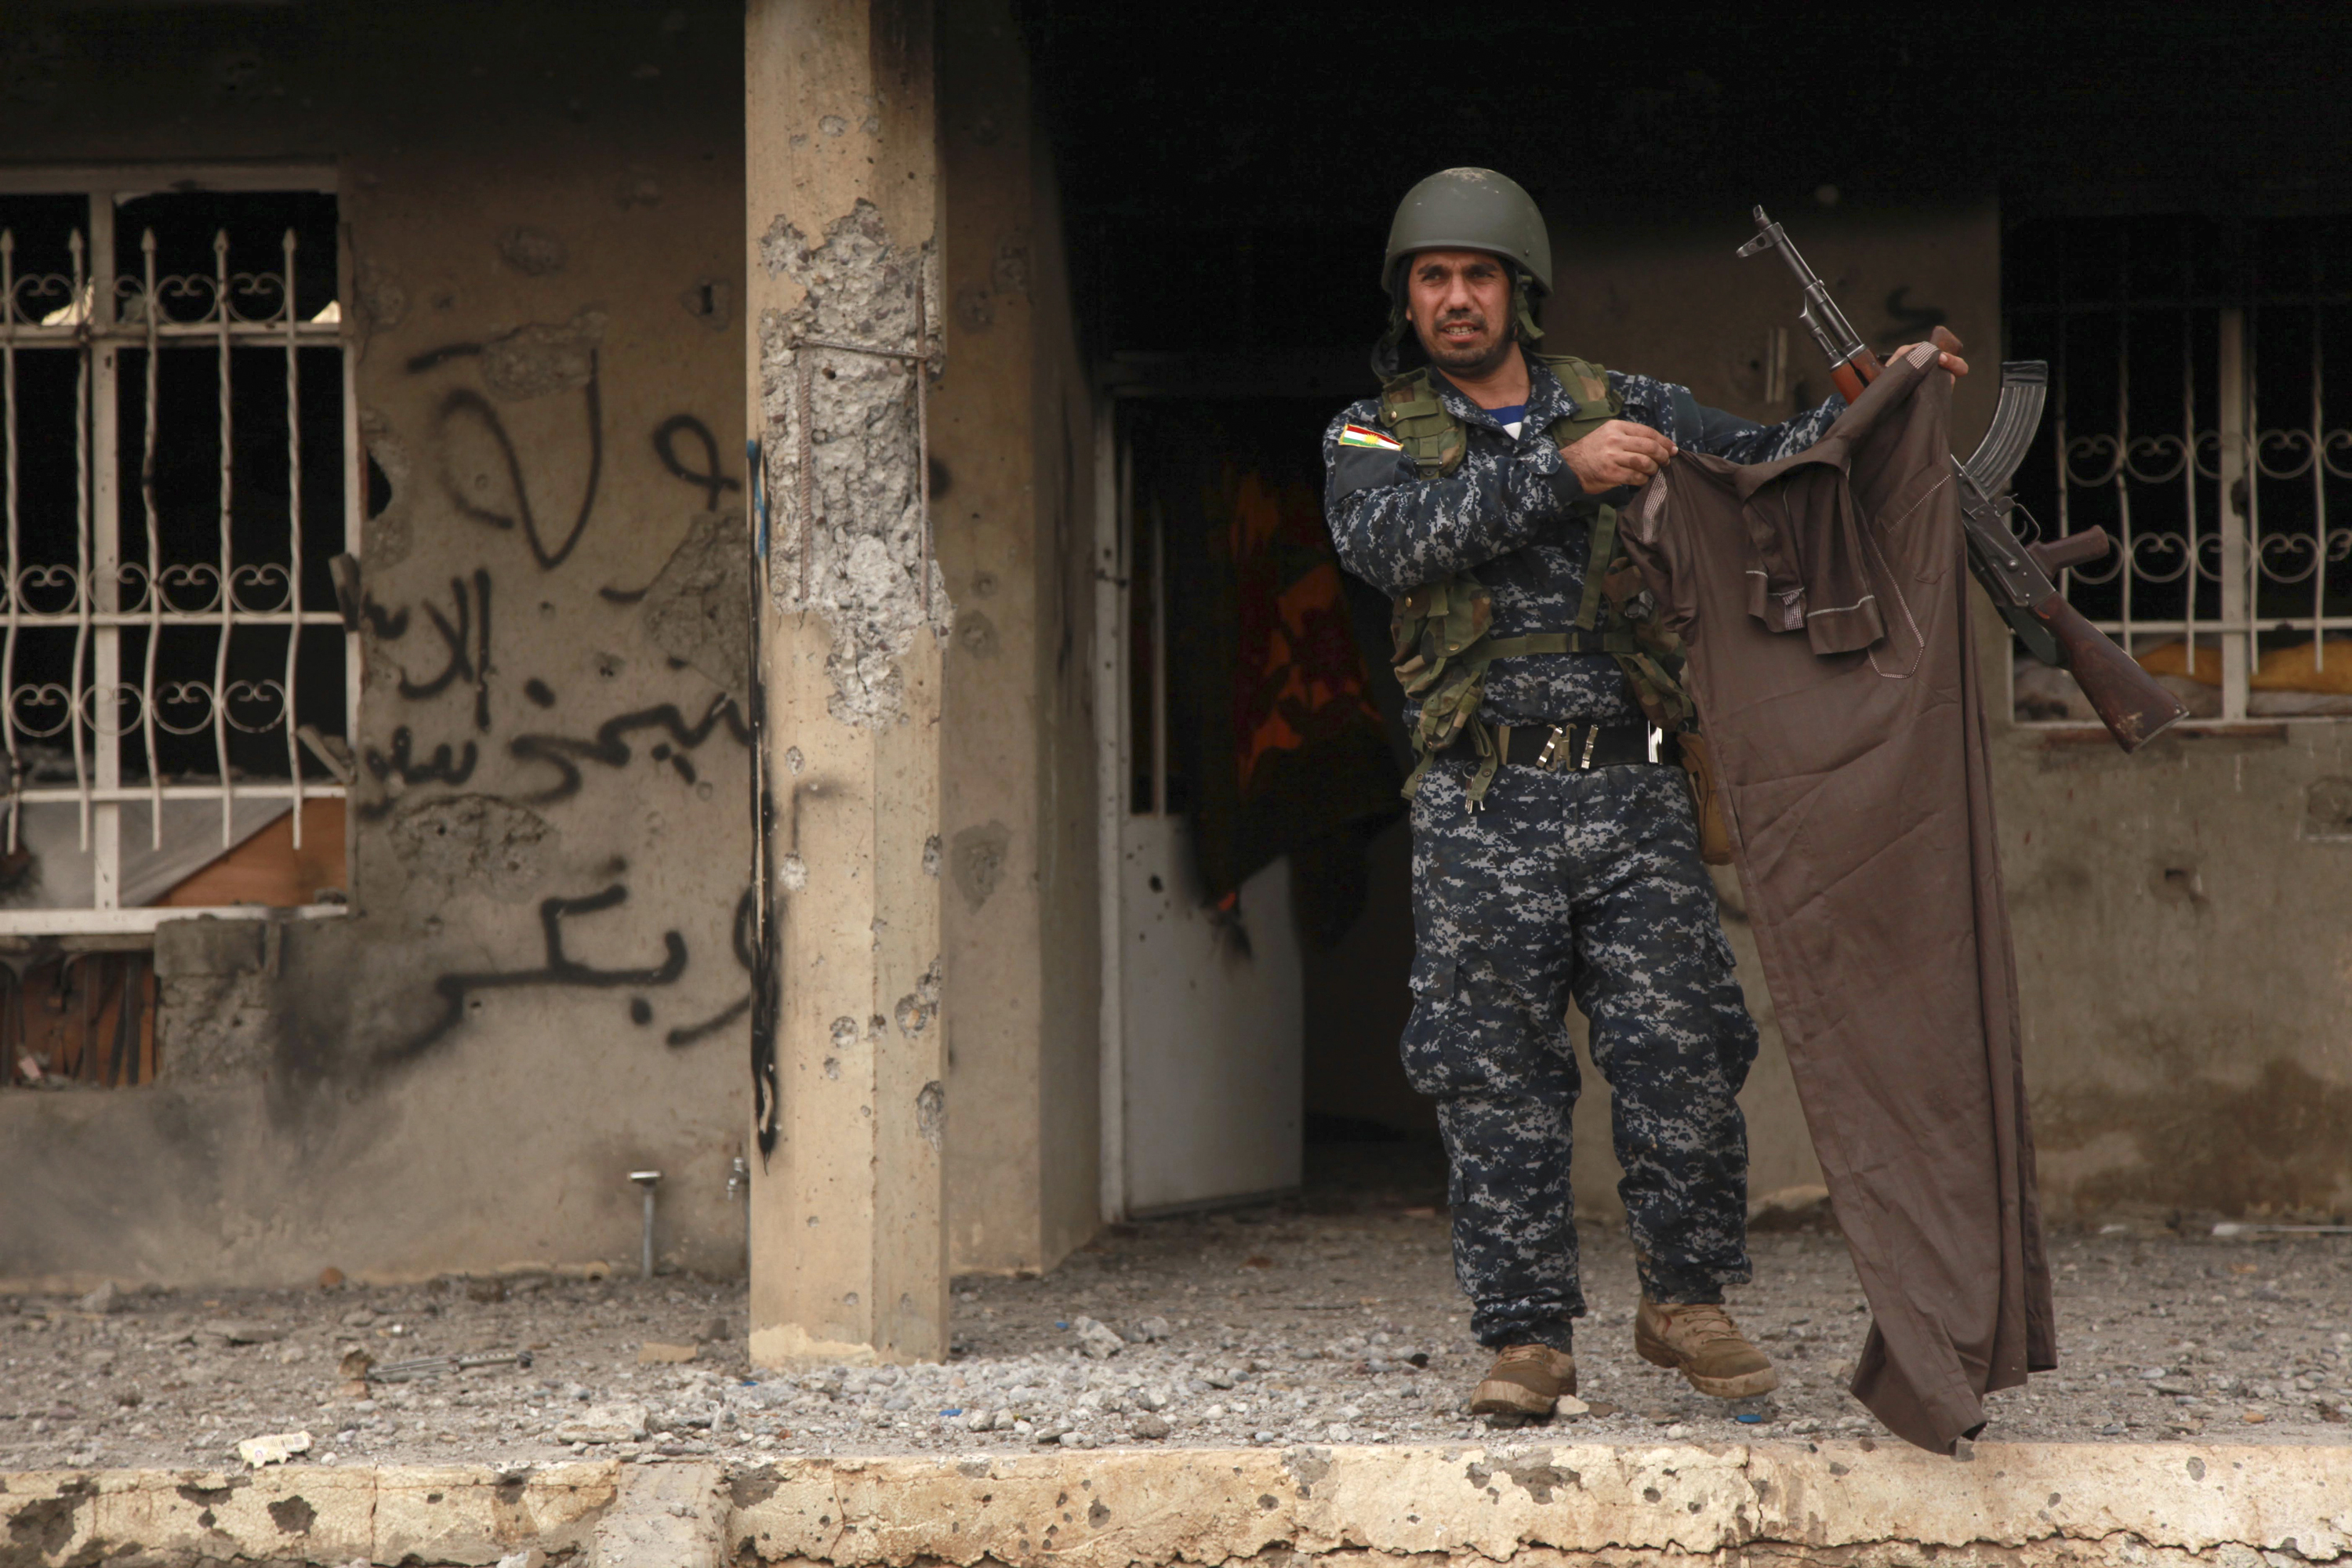 A Kurdish peshmerga fighter holds up a piece of clothing worn by an ISIS fighter on December 18, 2014. Kurdish peshmerga fighters have fought their way to Iraq's Sinjar mountain and freed hundreds of people trapped there by ISIS.